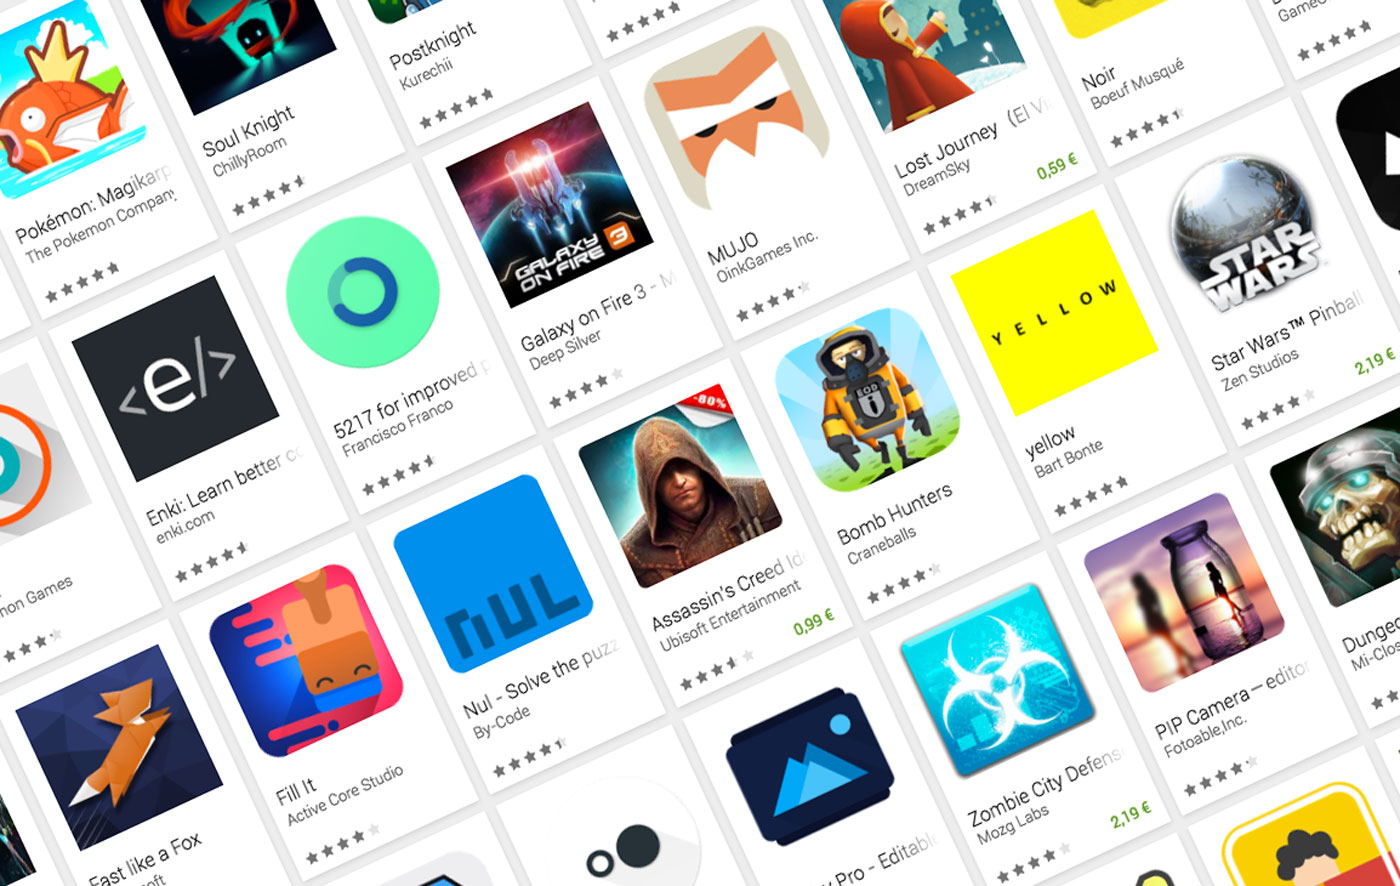 The 20 finalists of the indie game festival of the Google Play in San Francisco are announced